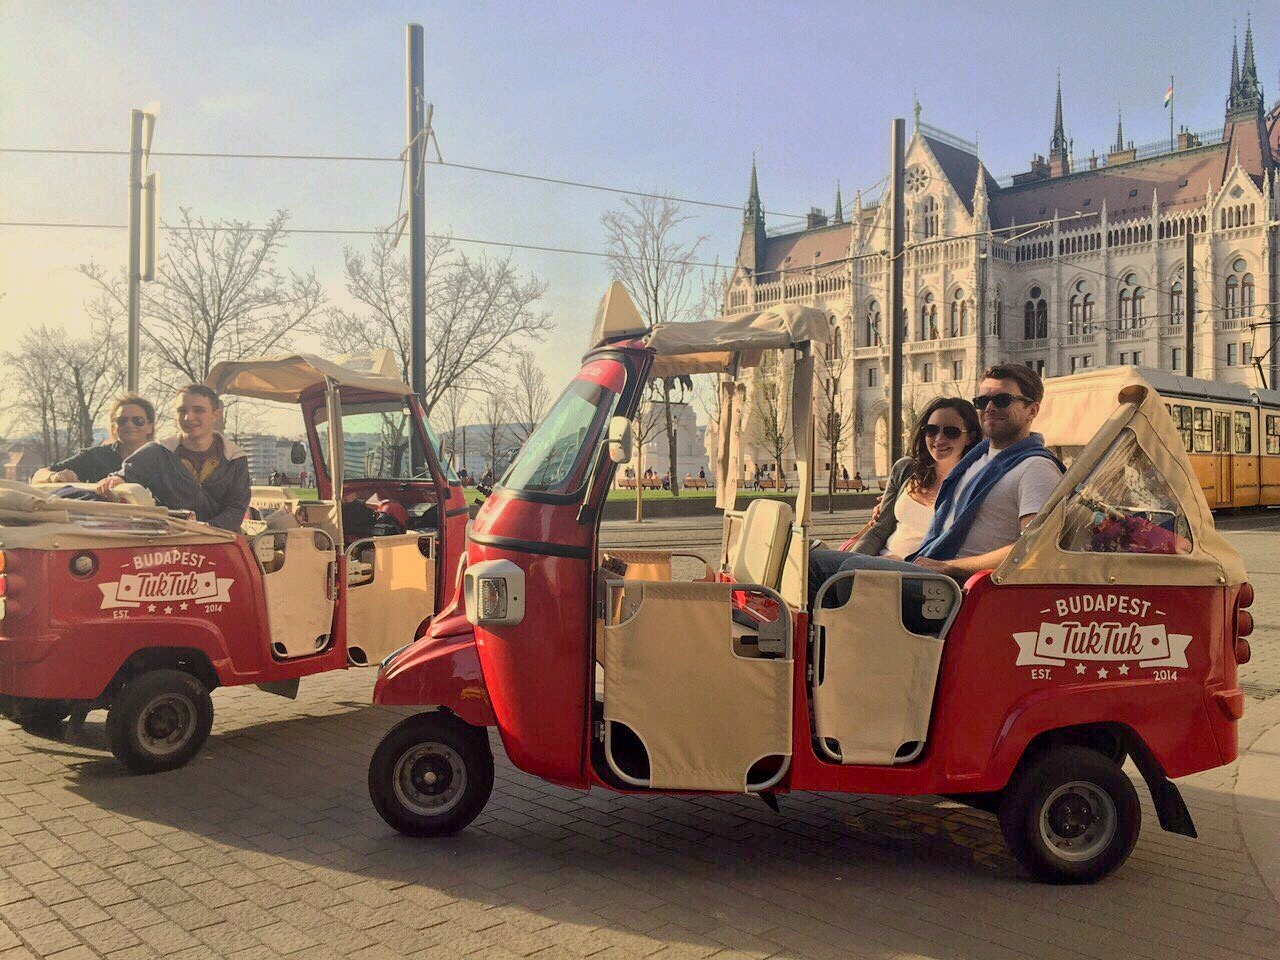 Budapest City Tour in a TukTuk (2,5h) + Free Boat Trip on Danube (70 min)